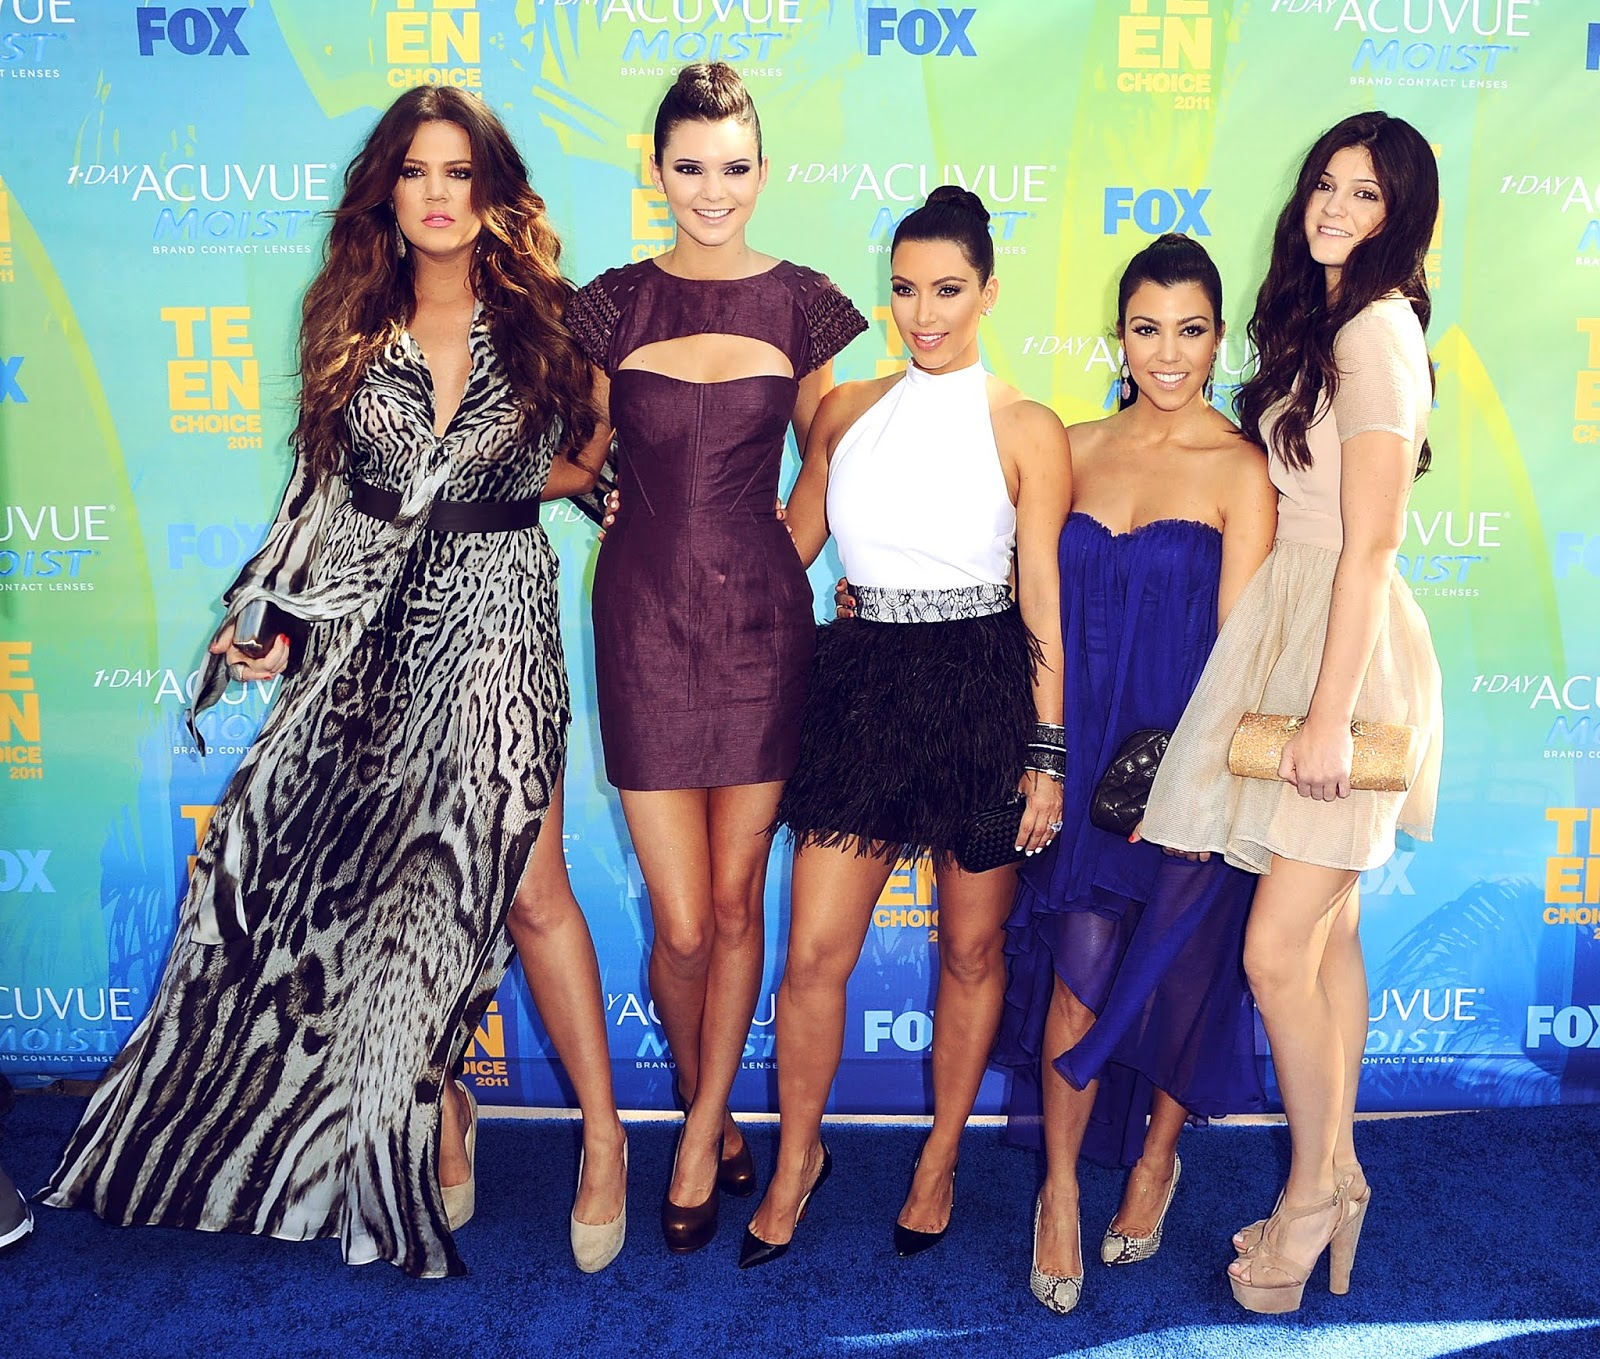 33- Teen Choice Awards in August 11, 2011